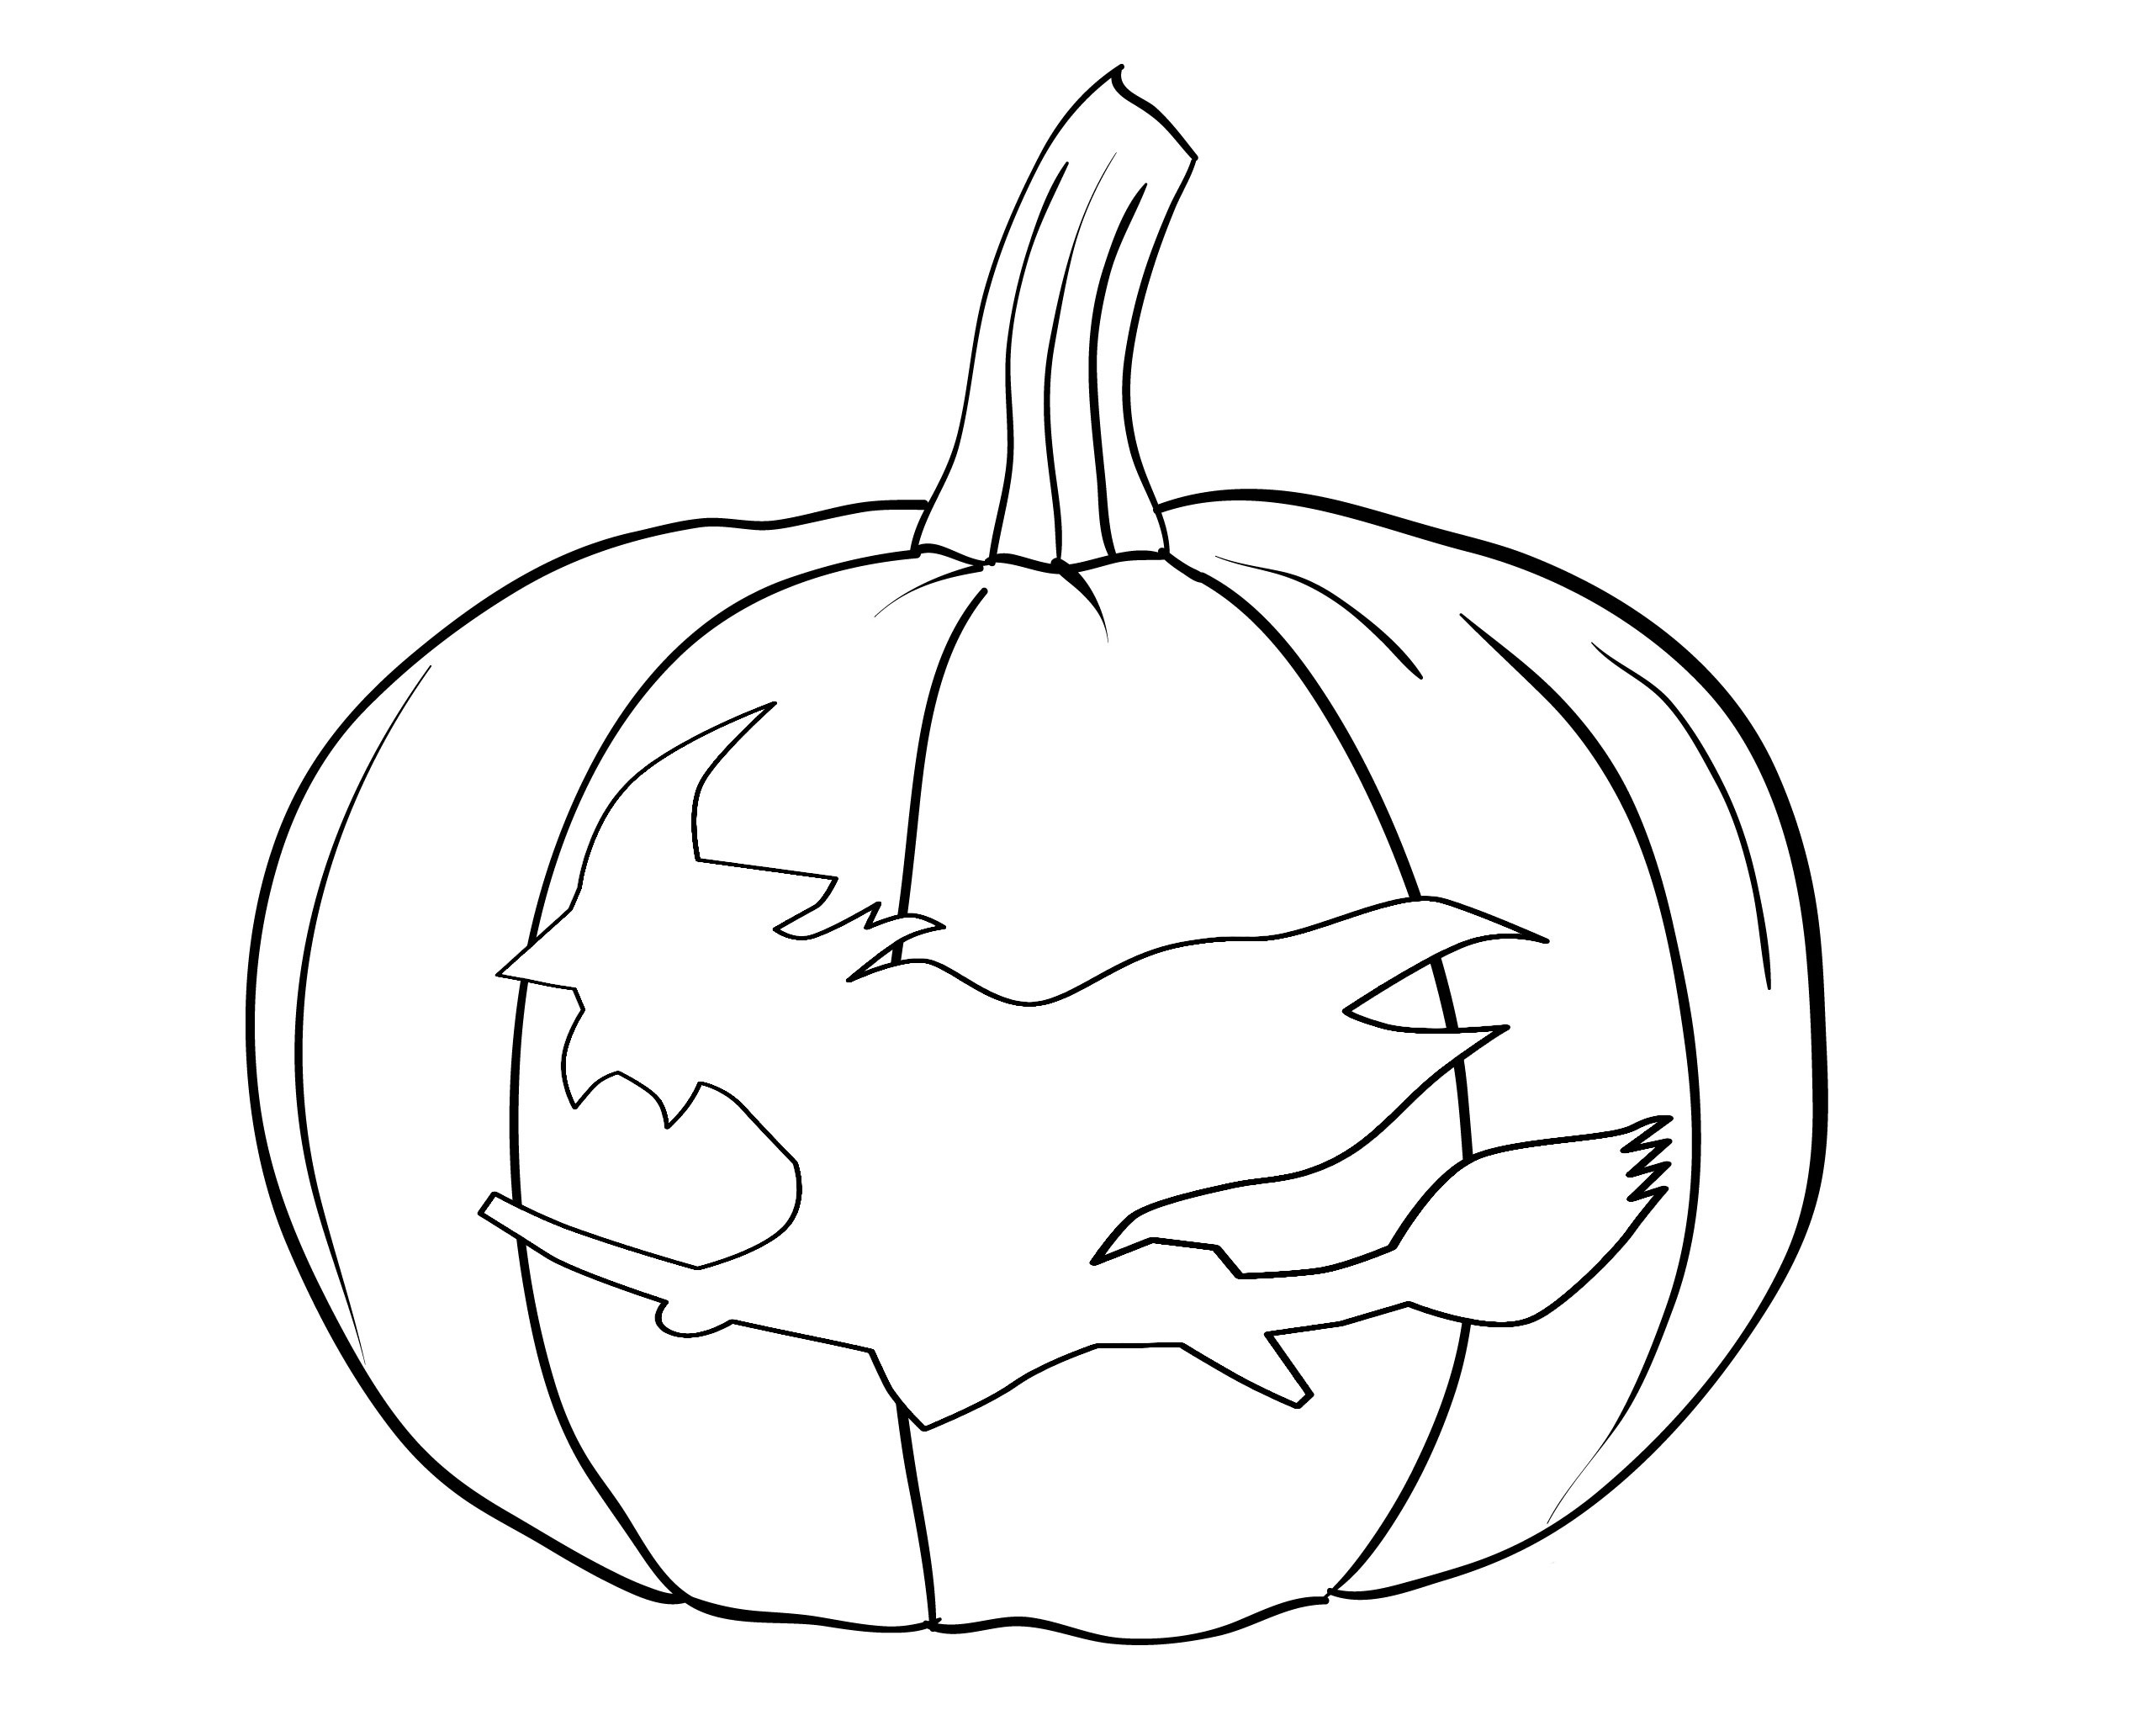 pumkin coloring pages pumpkin two pumpkin with bucket full of apple to color coloring pages pumkin